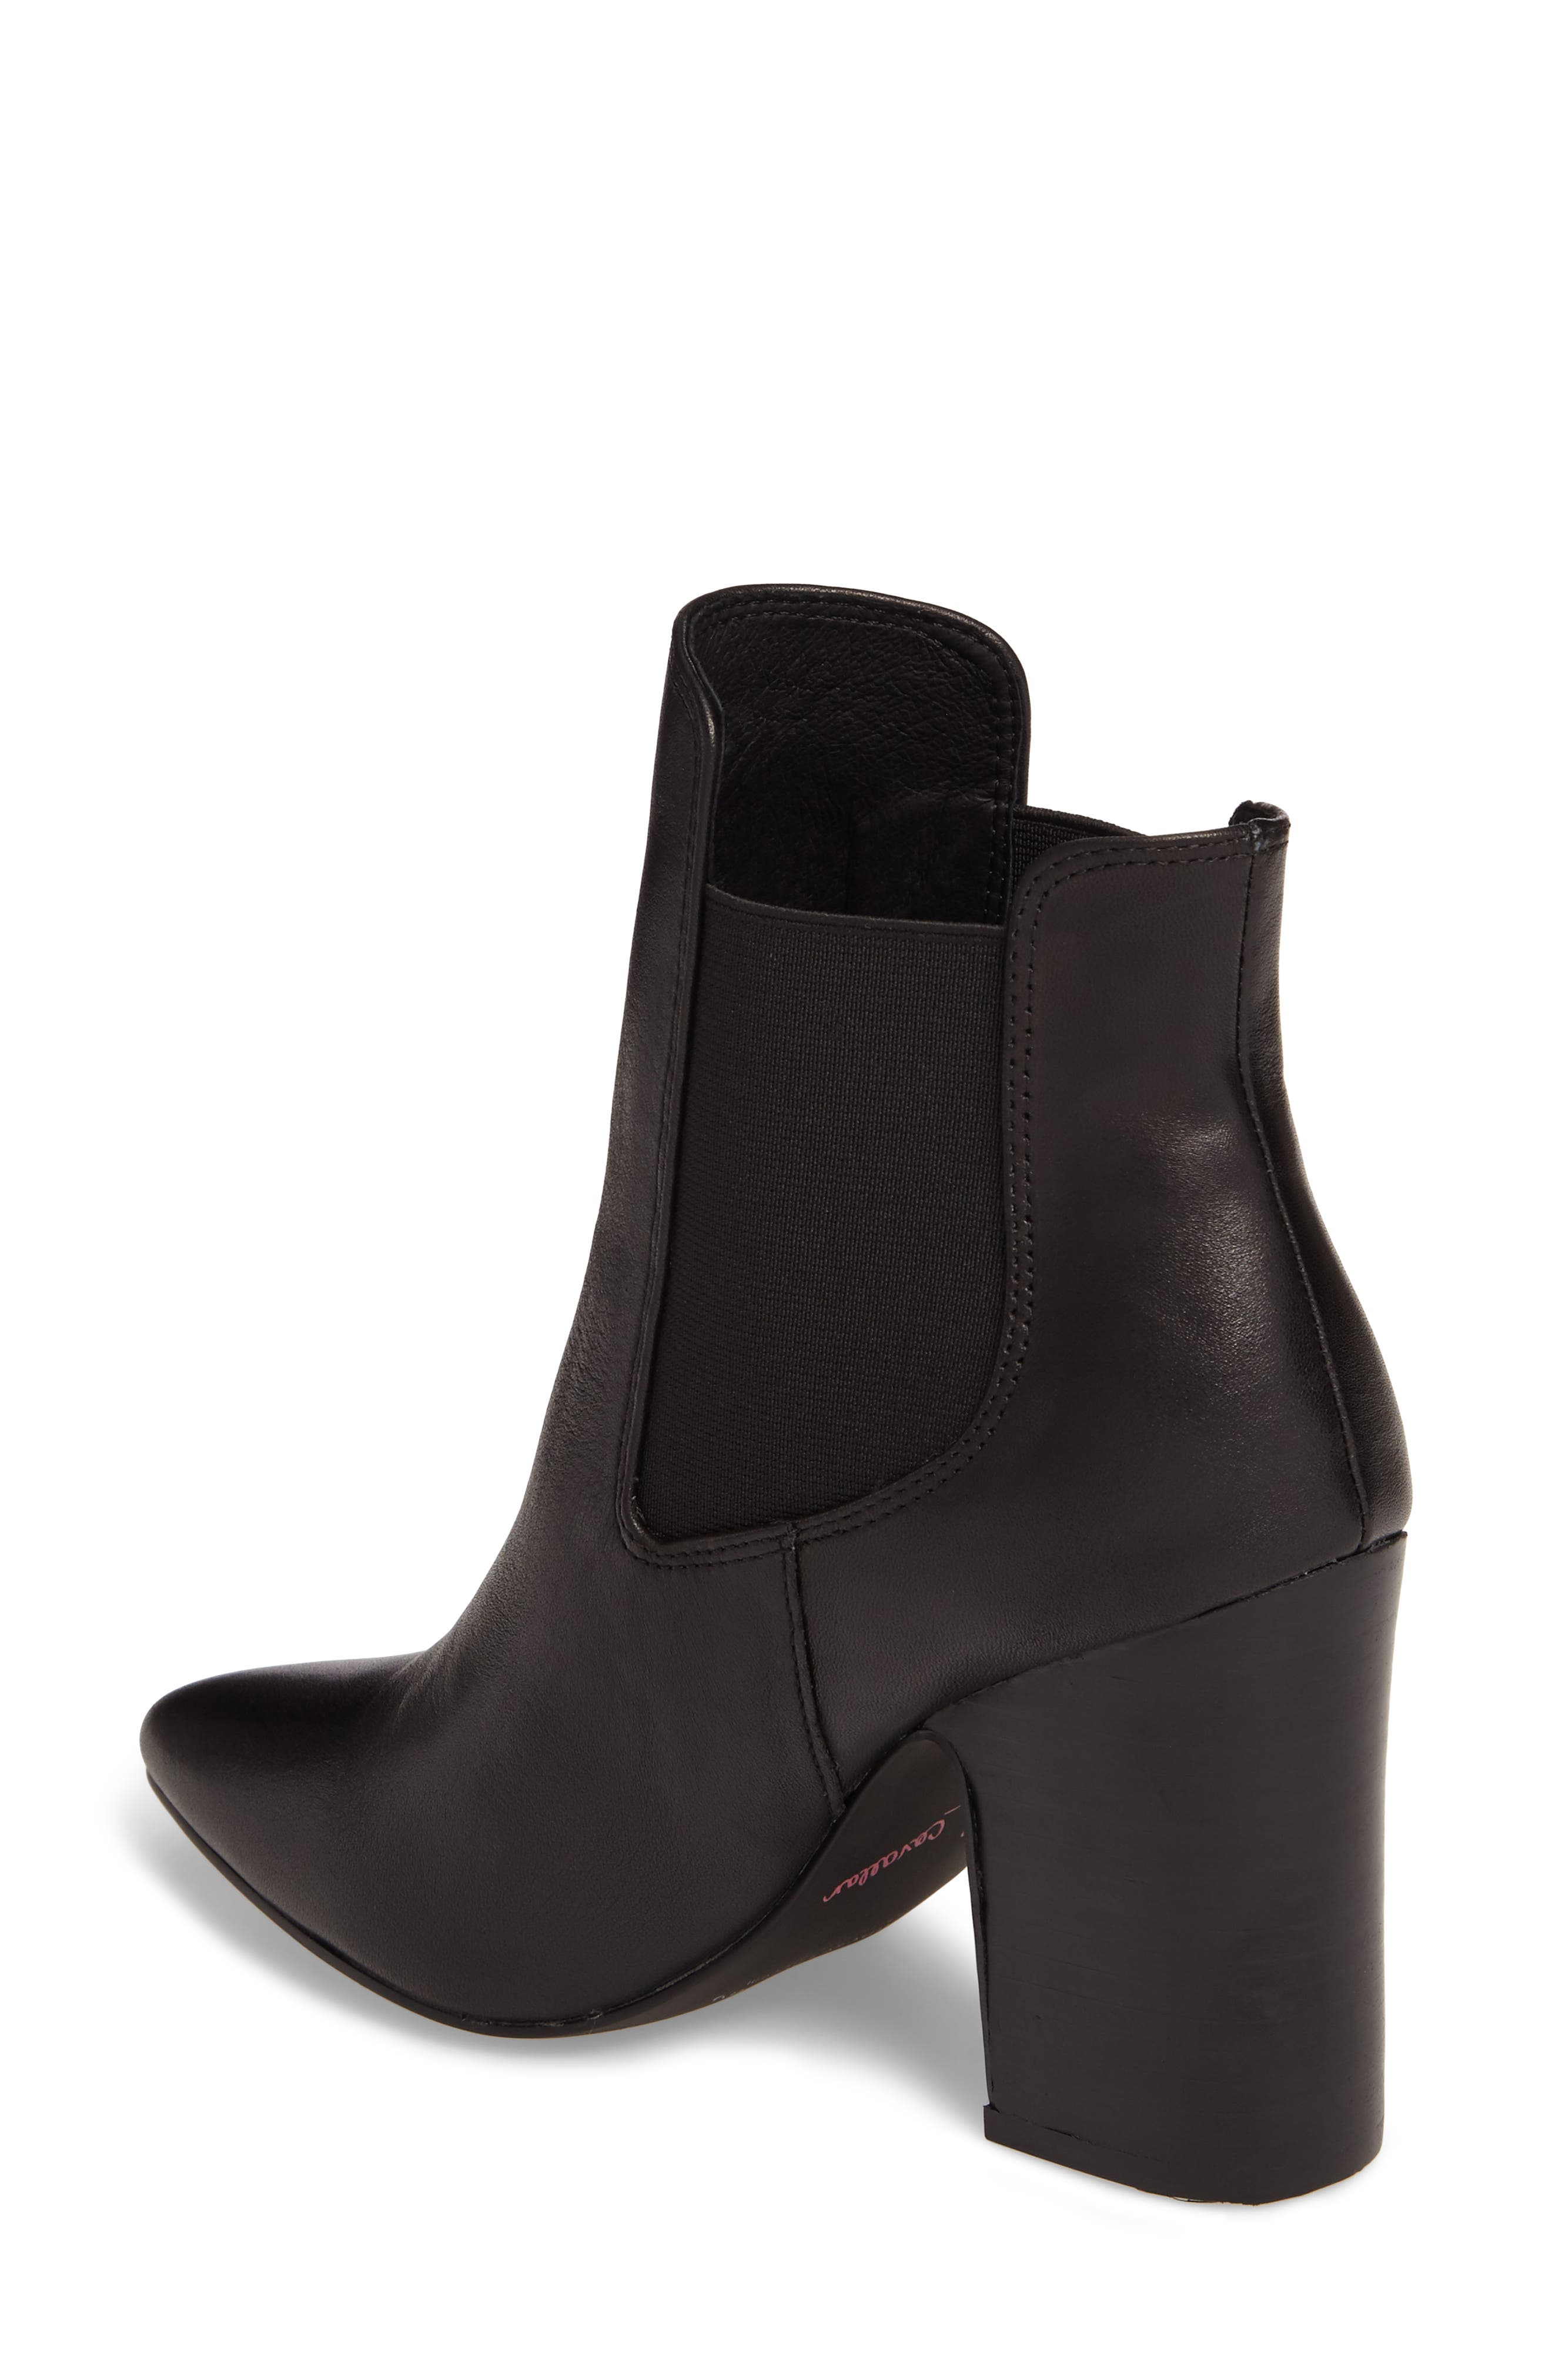 Starlight Bootie,                             Alternate thumbnail 2, color,                             BLACK LEATHER